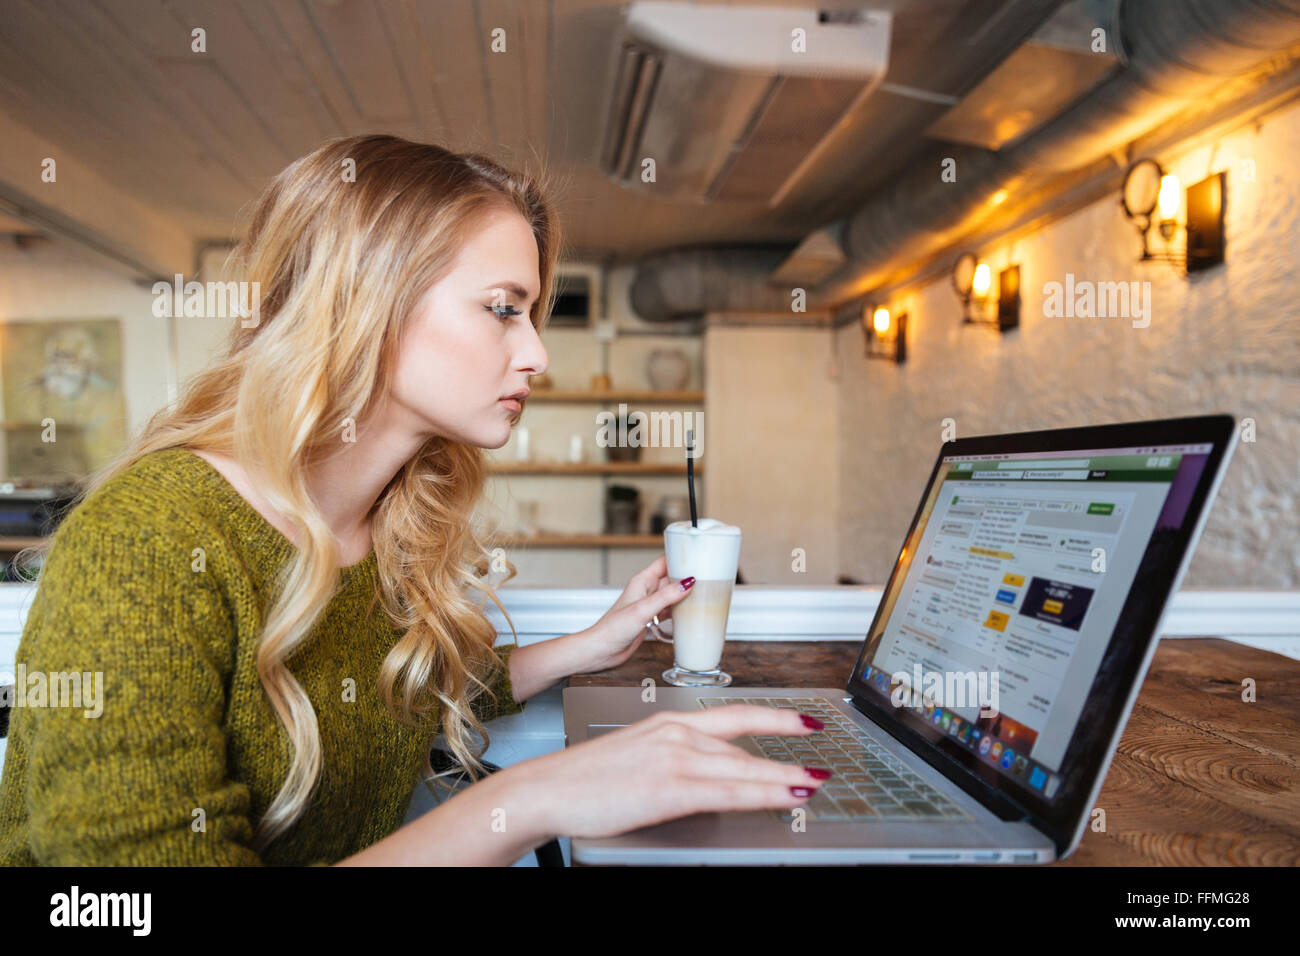 Blonde woman using laptop computer in cafe Stock Photo